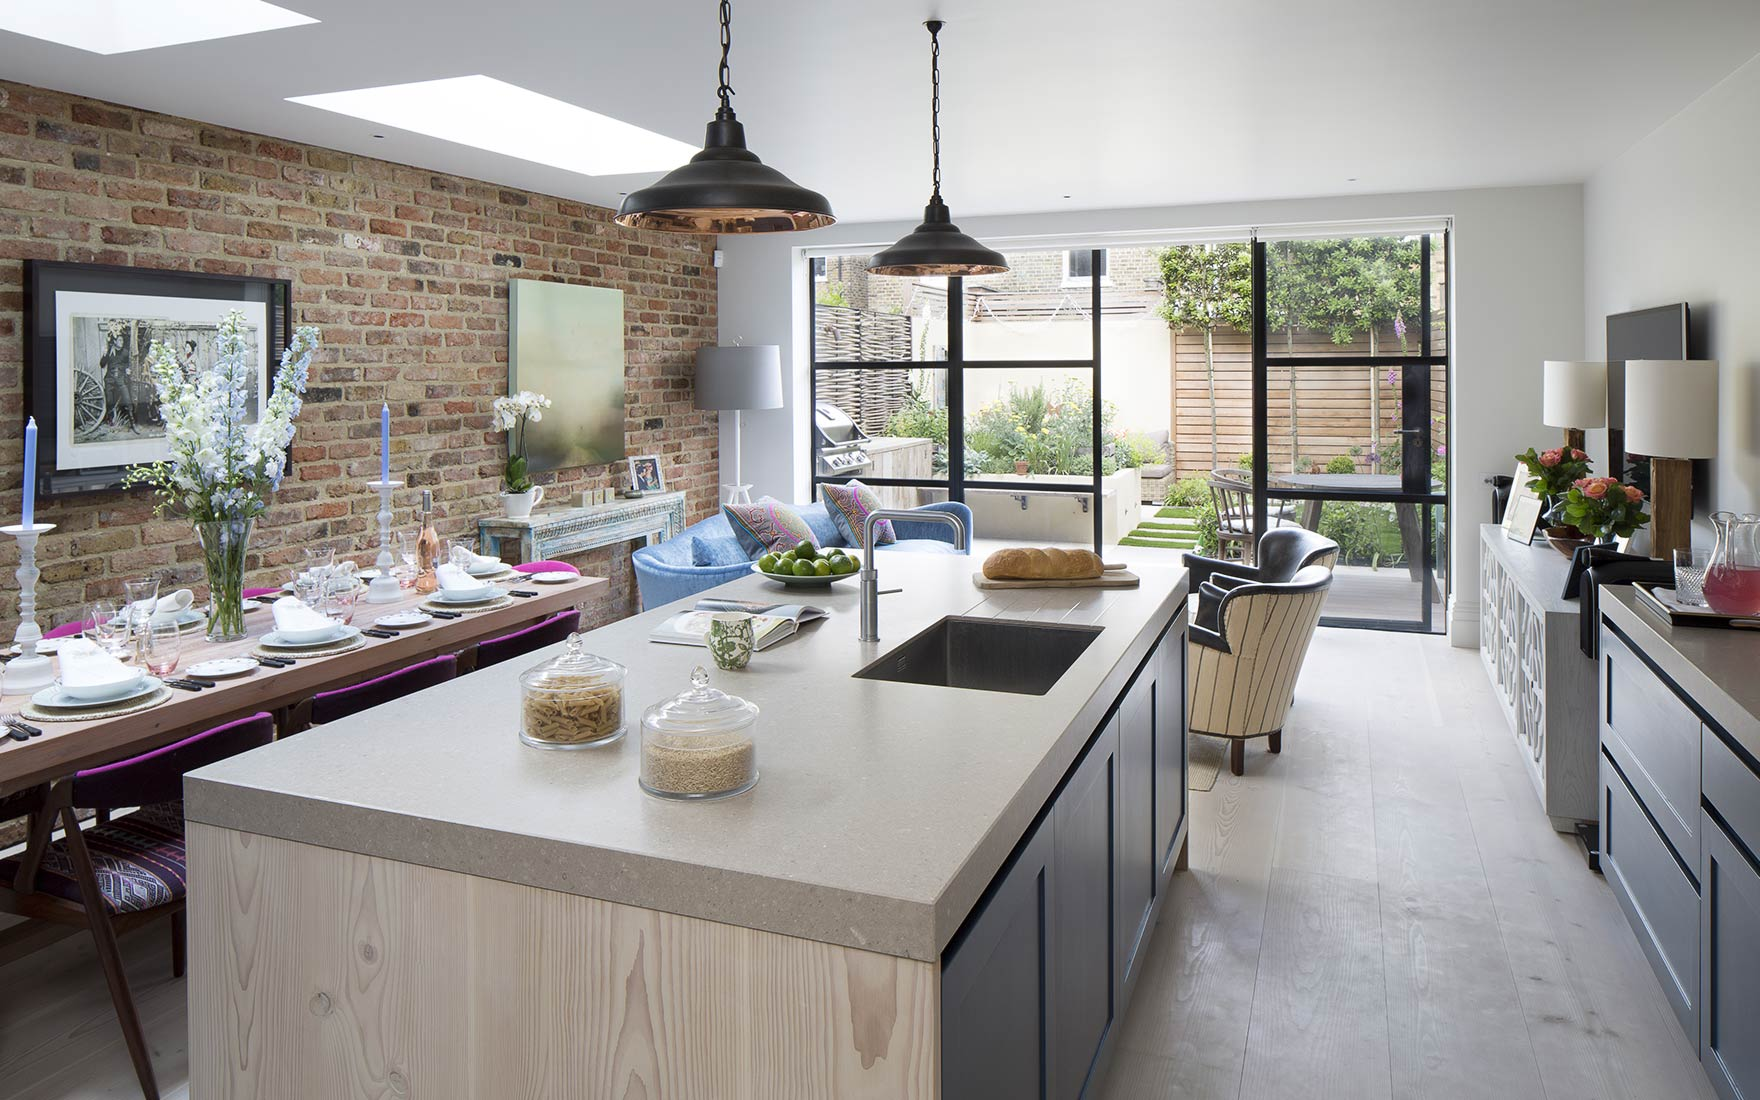 Wandsworth kitchen dining area with exposed brick wall and concrete work surface